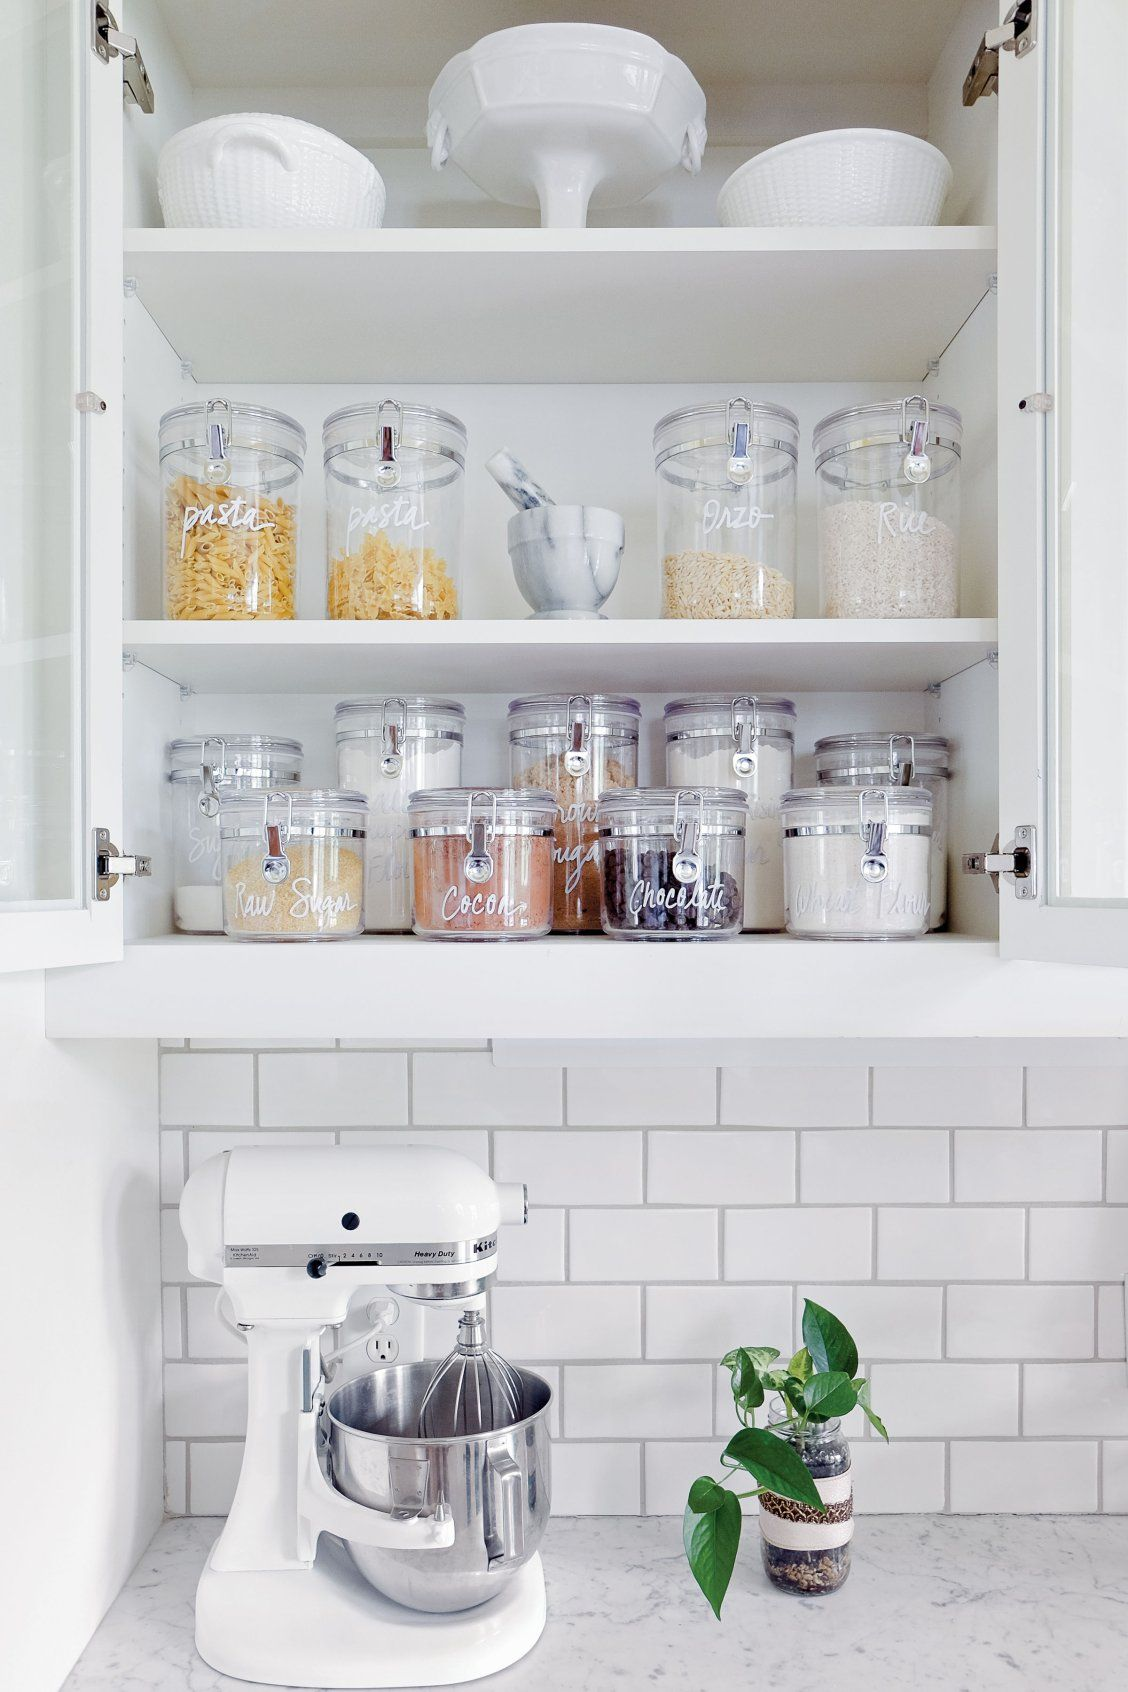 The Home Edit By Clea Shearer Joanna Teplin 9780525572640 Penguinrandomhouse Com Books In 2020 The Home Edit Glass Front Cabinets Home